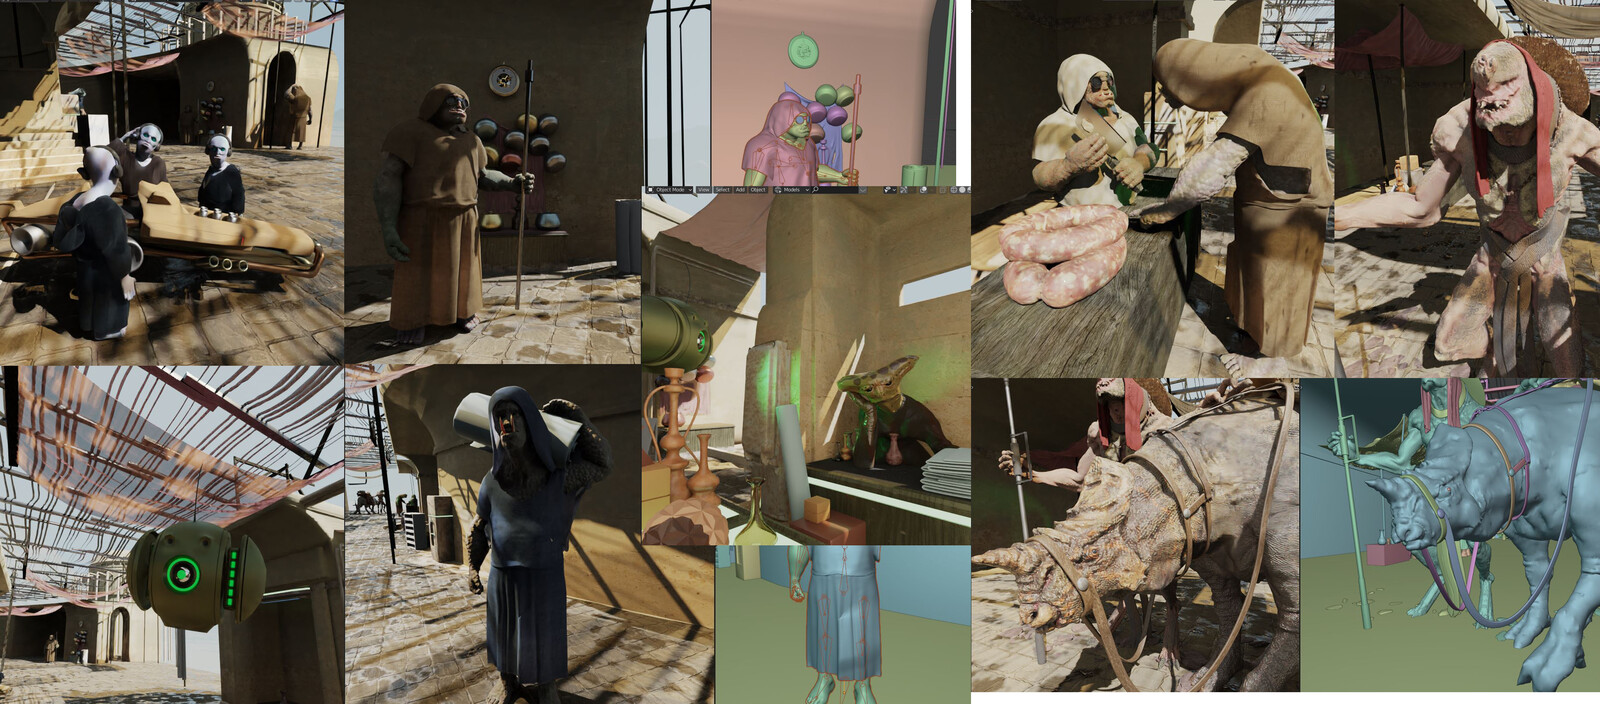 Secondary characters were quickly made to be scattered around the scene, with different poses and elements. Most of their shaders are also procedurally made.